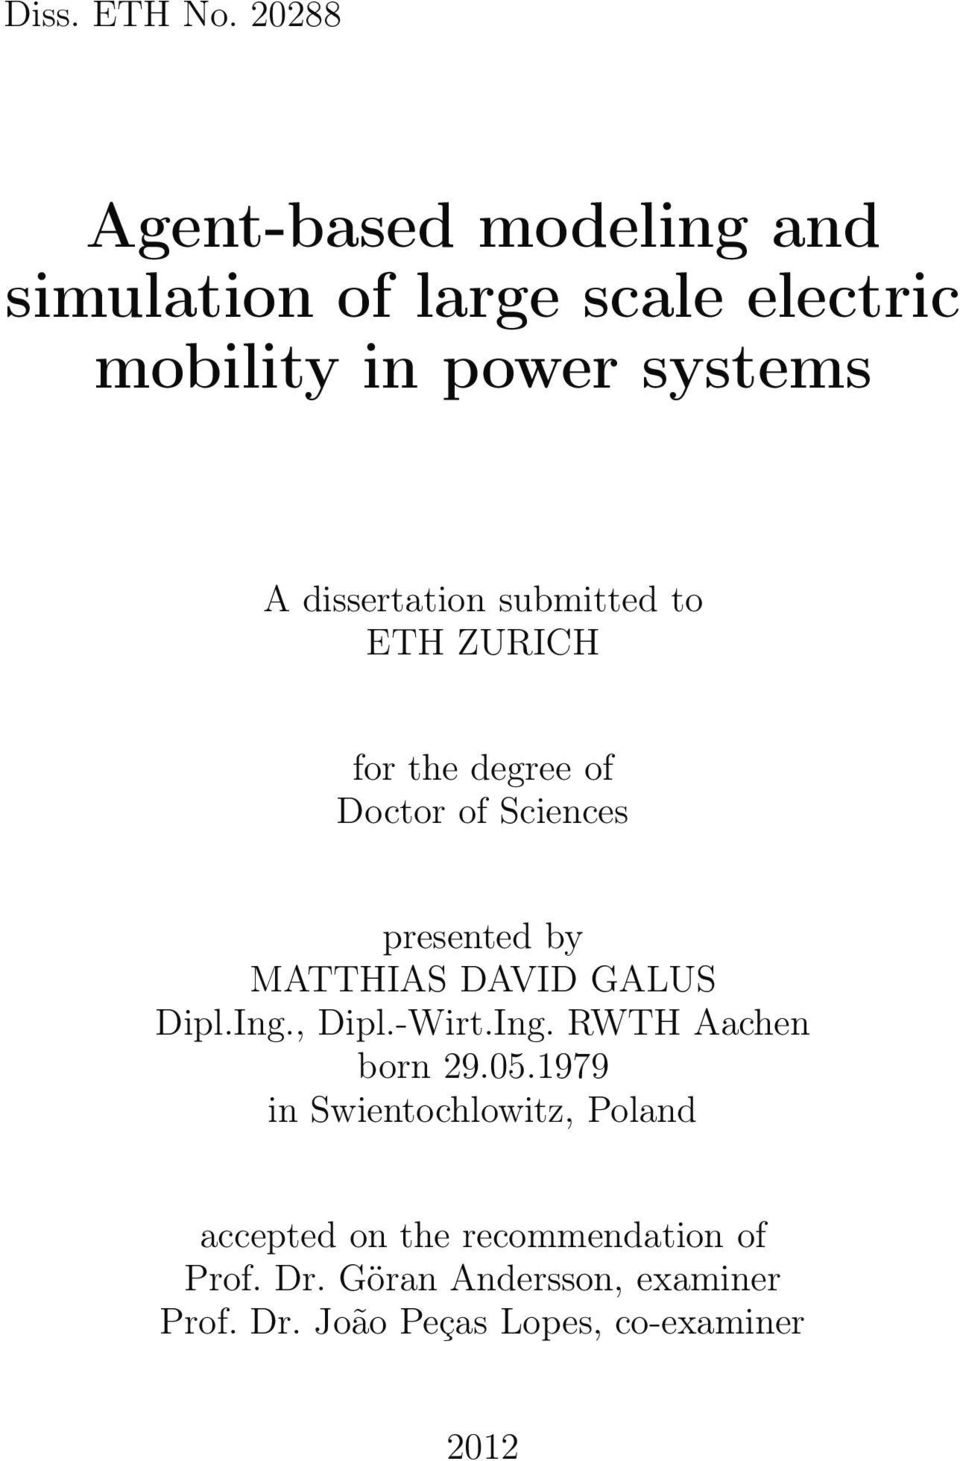 dissertation submitted to ETH ZURICH for the degree of Doctor of Sciences presented by MATTHIAS DAVID